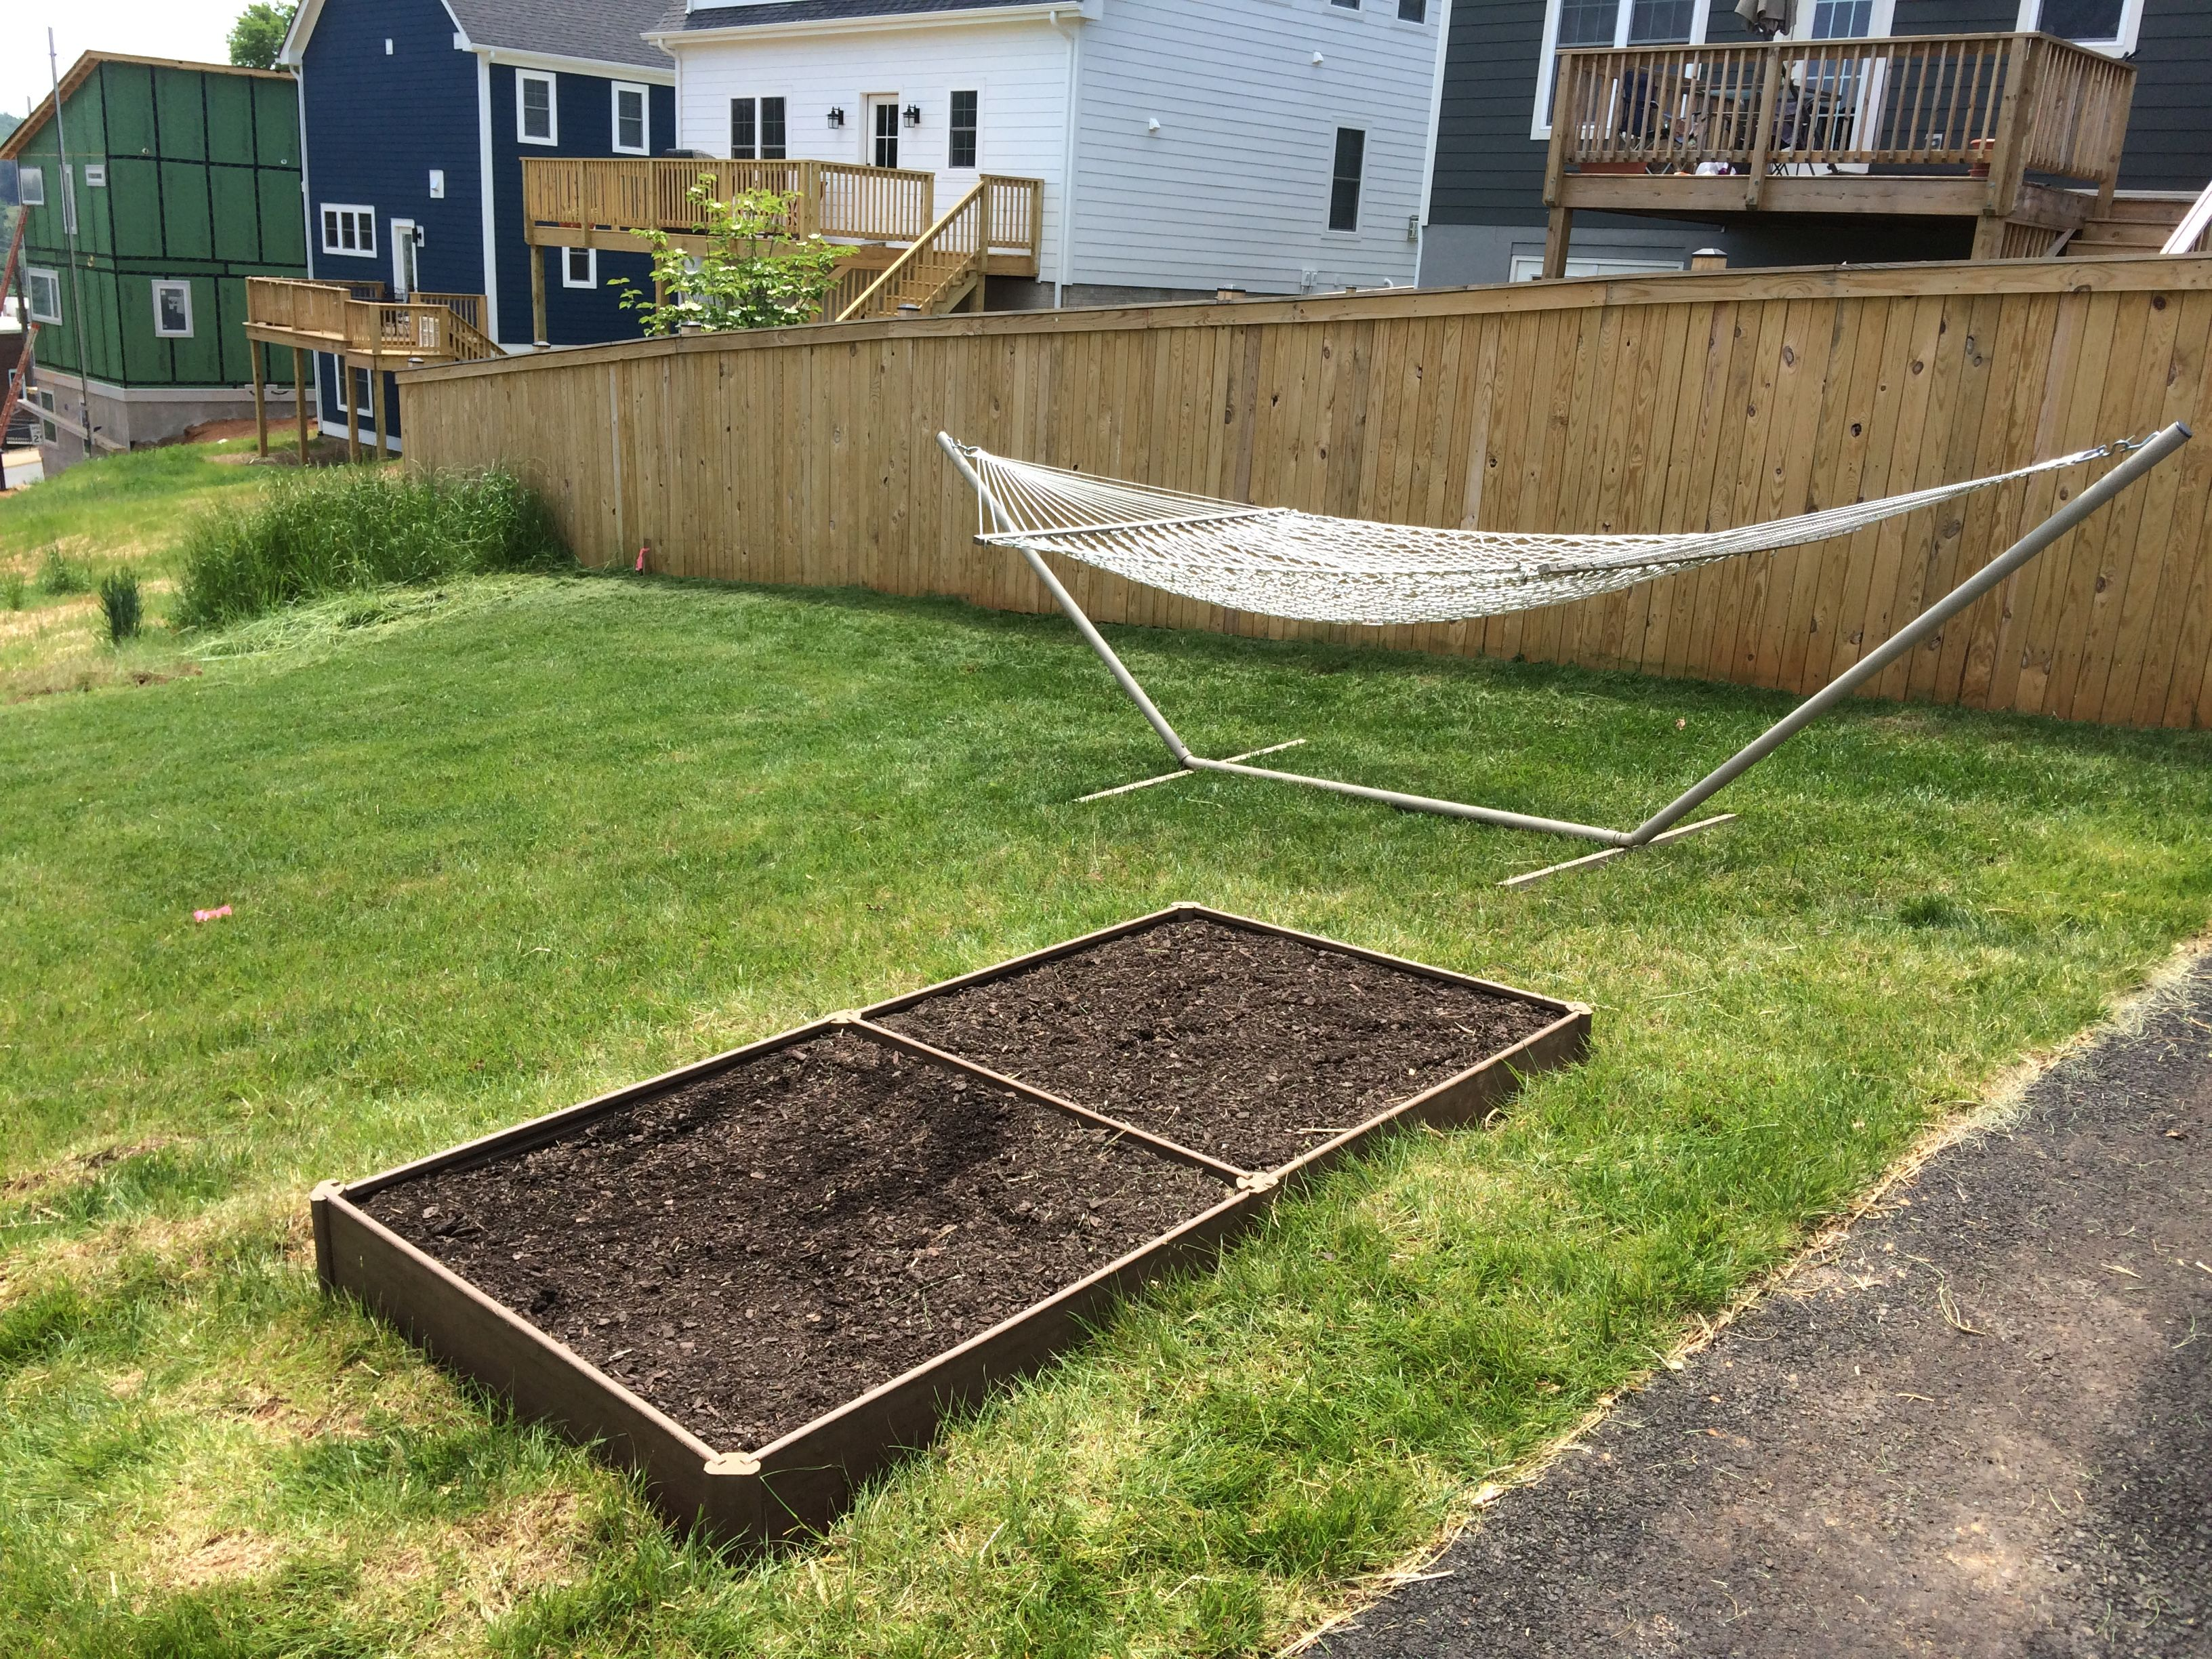 The Planter Boxes Required About 6 Bags Of 2 Cu Ft Dirt Each I Bought Garden Soil From Lowes On Sale For About Buy Garden Outdoor Furniture Sets Outdoor Decor